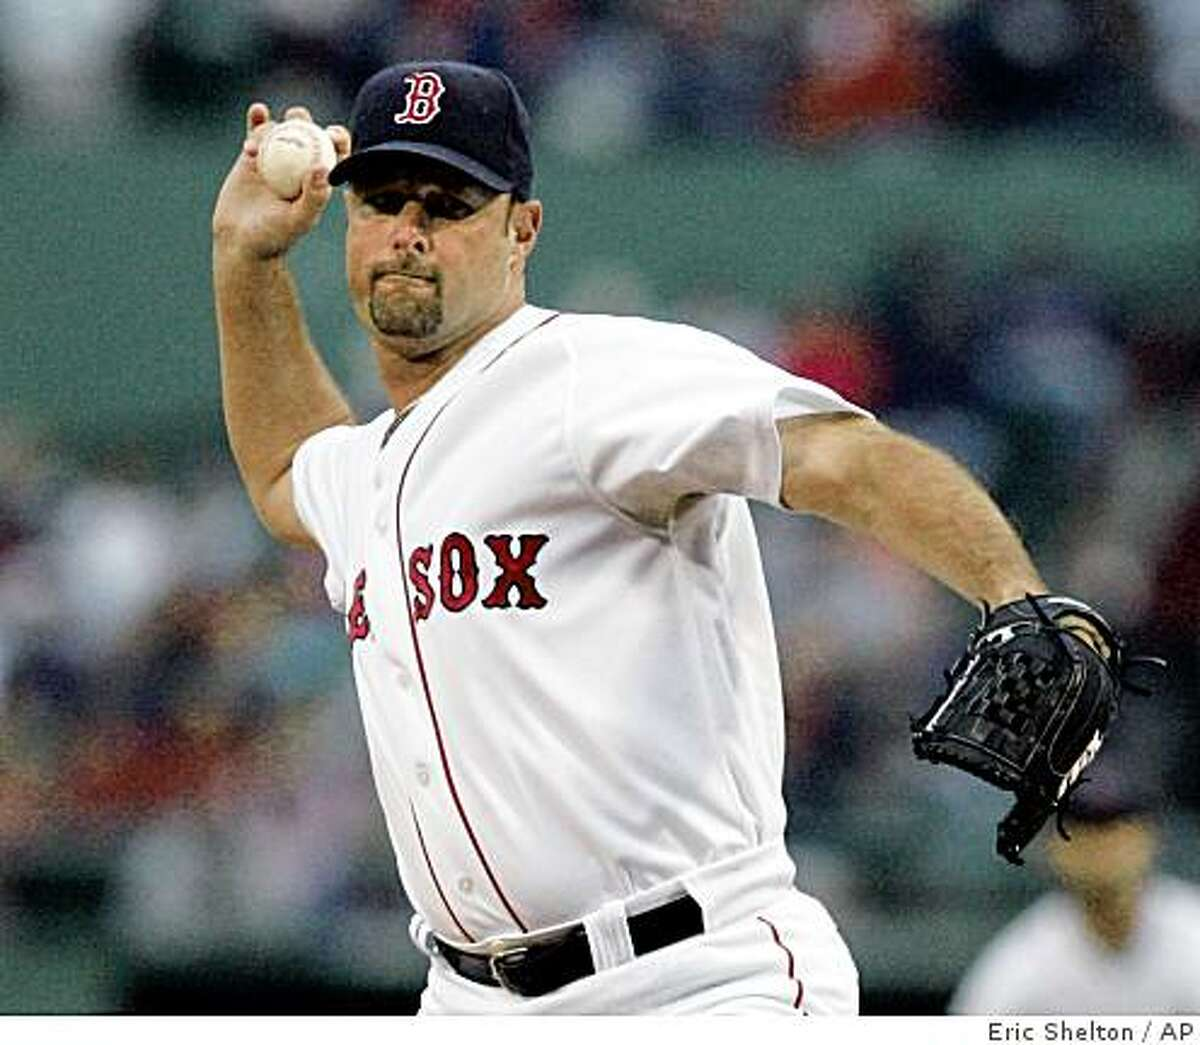 Boston Red Sox starter Tim Wakefield delivers to the Oakland Athletics during the first inning of their baseball game at Fenway Park in Boston, Wednesday, July 8, 2009.